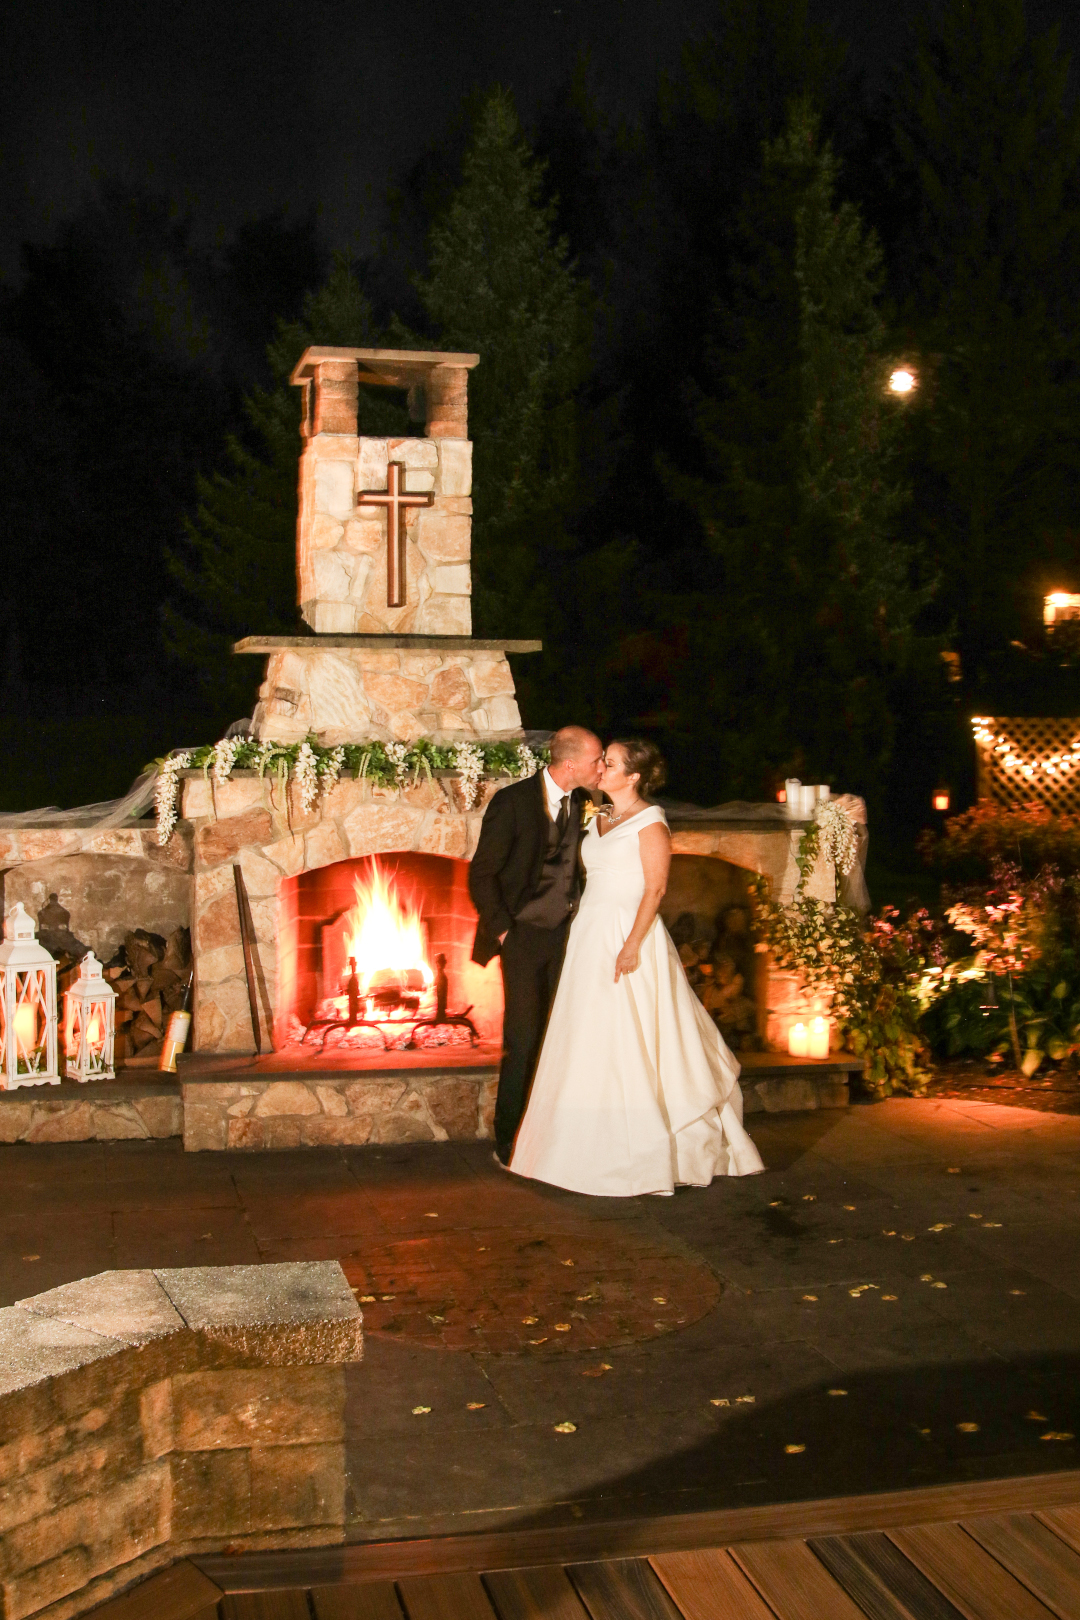 A newly married couple kiss in front of an outdoor fireplace